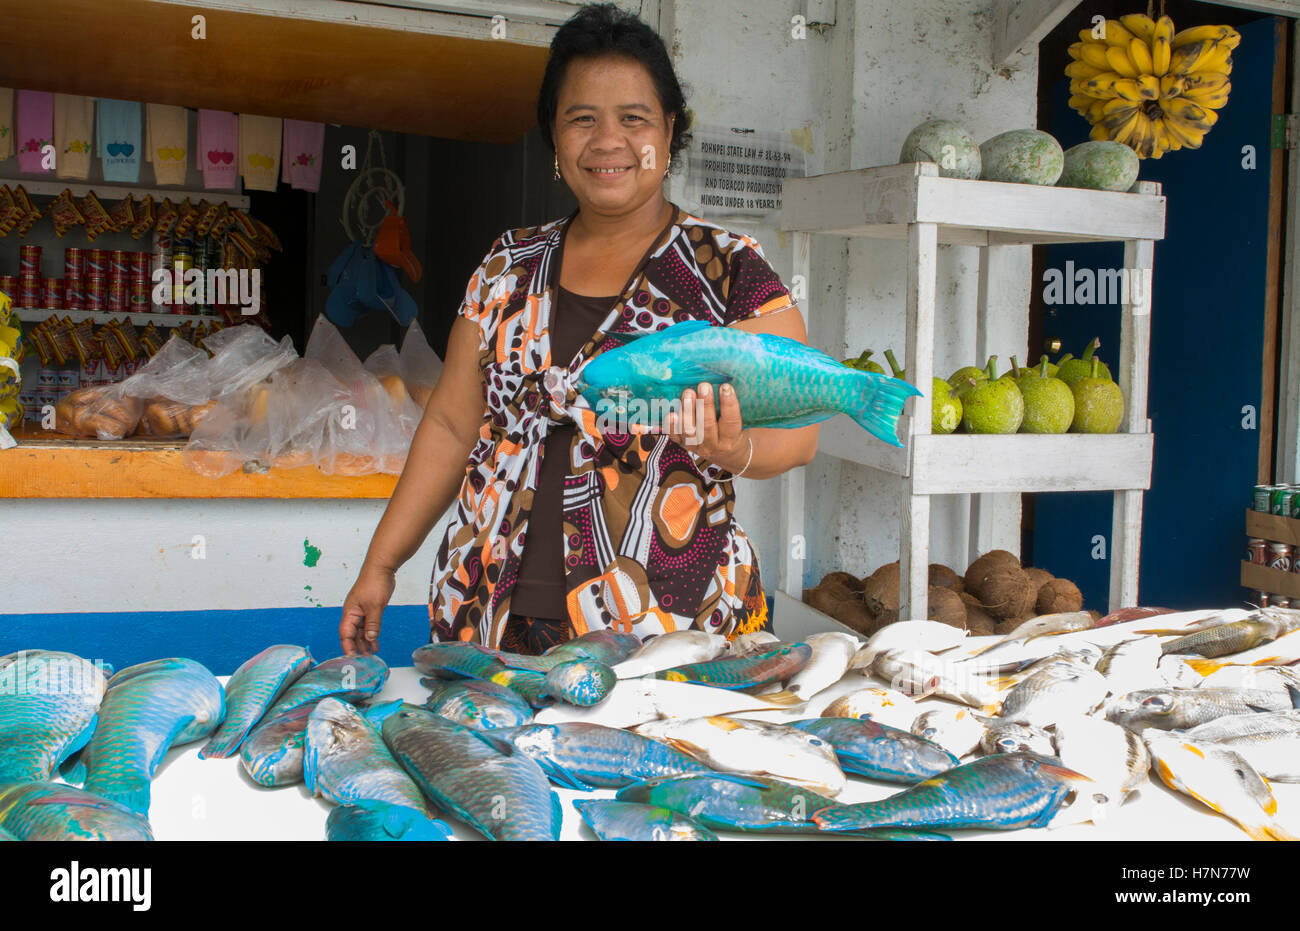 Pohnpei Market Stock Photos & Pohnpei Market Stock Images